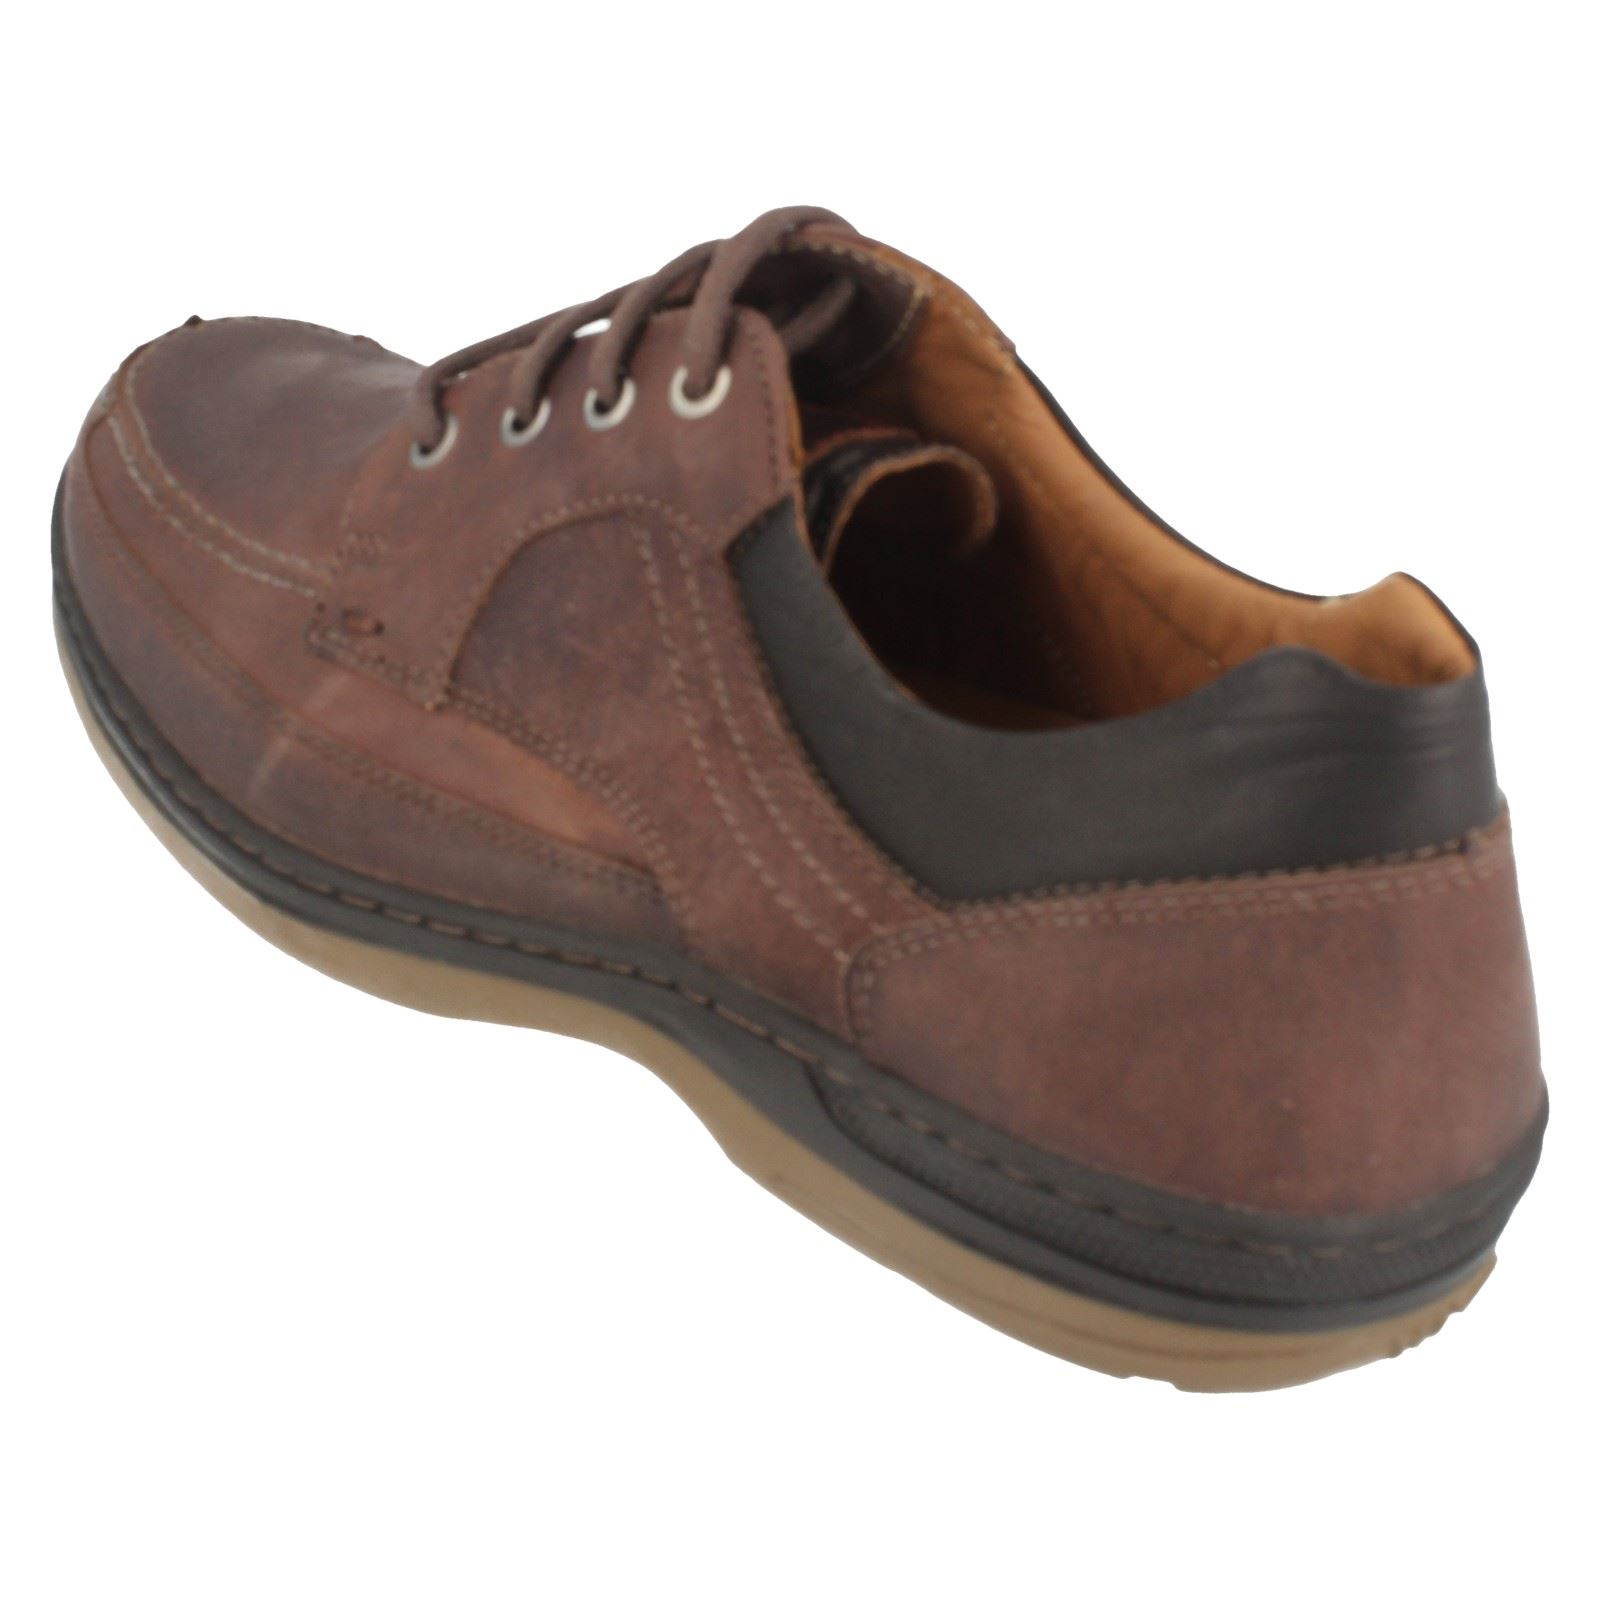 Uomo Anatomic & Co Casual Schuhes With Removable Removable Removable Insole Gurupi N bd59b1